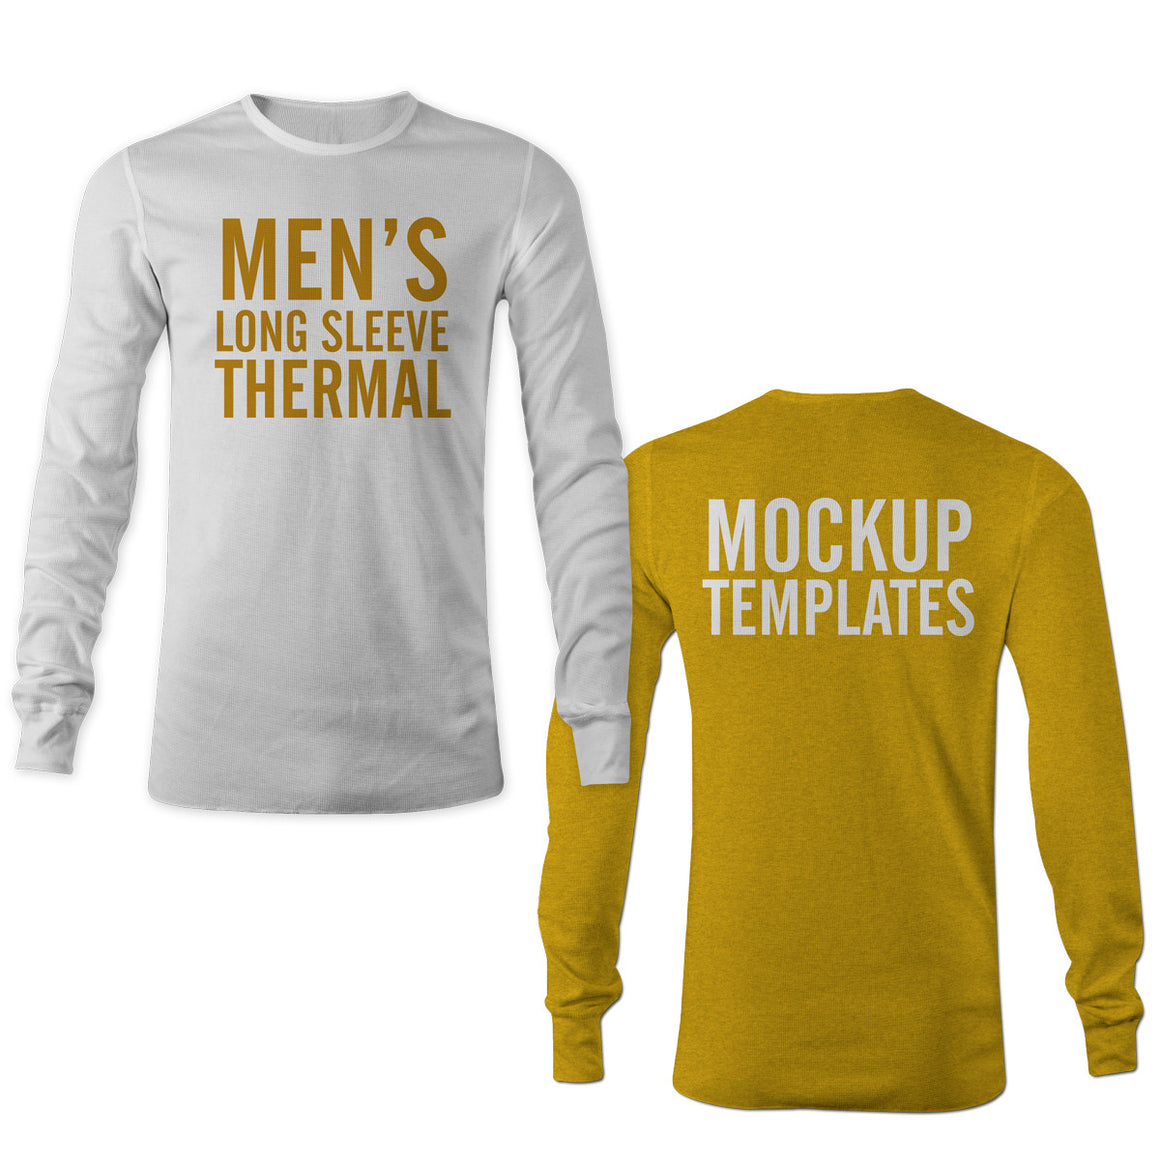 Men's Thermal Long Sleeve Shirt Mockup Templates Photoshop and Illustrator